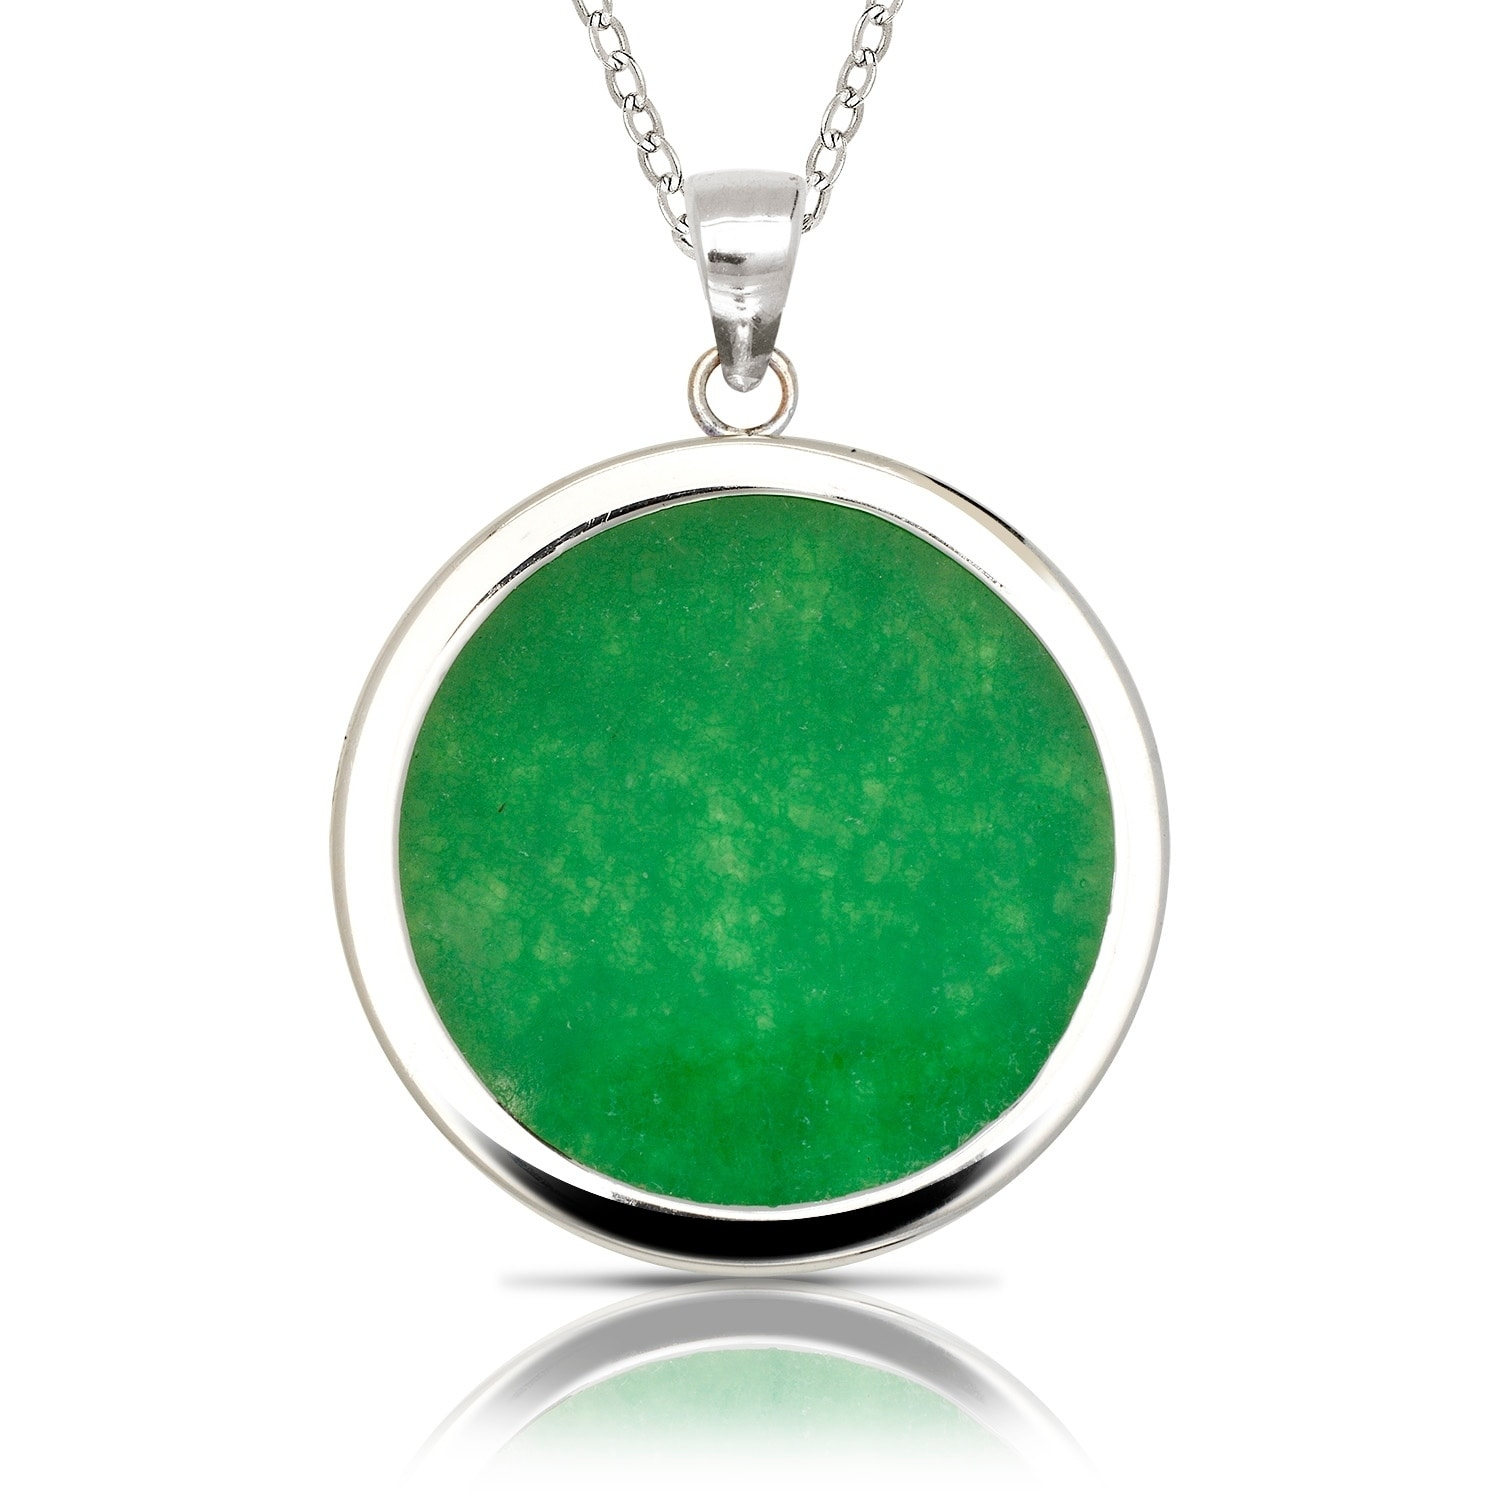 silver onyx aguilar hector green necklace spratling img sterling and products william the